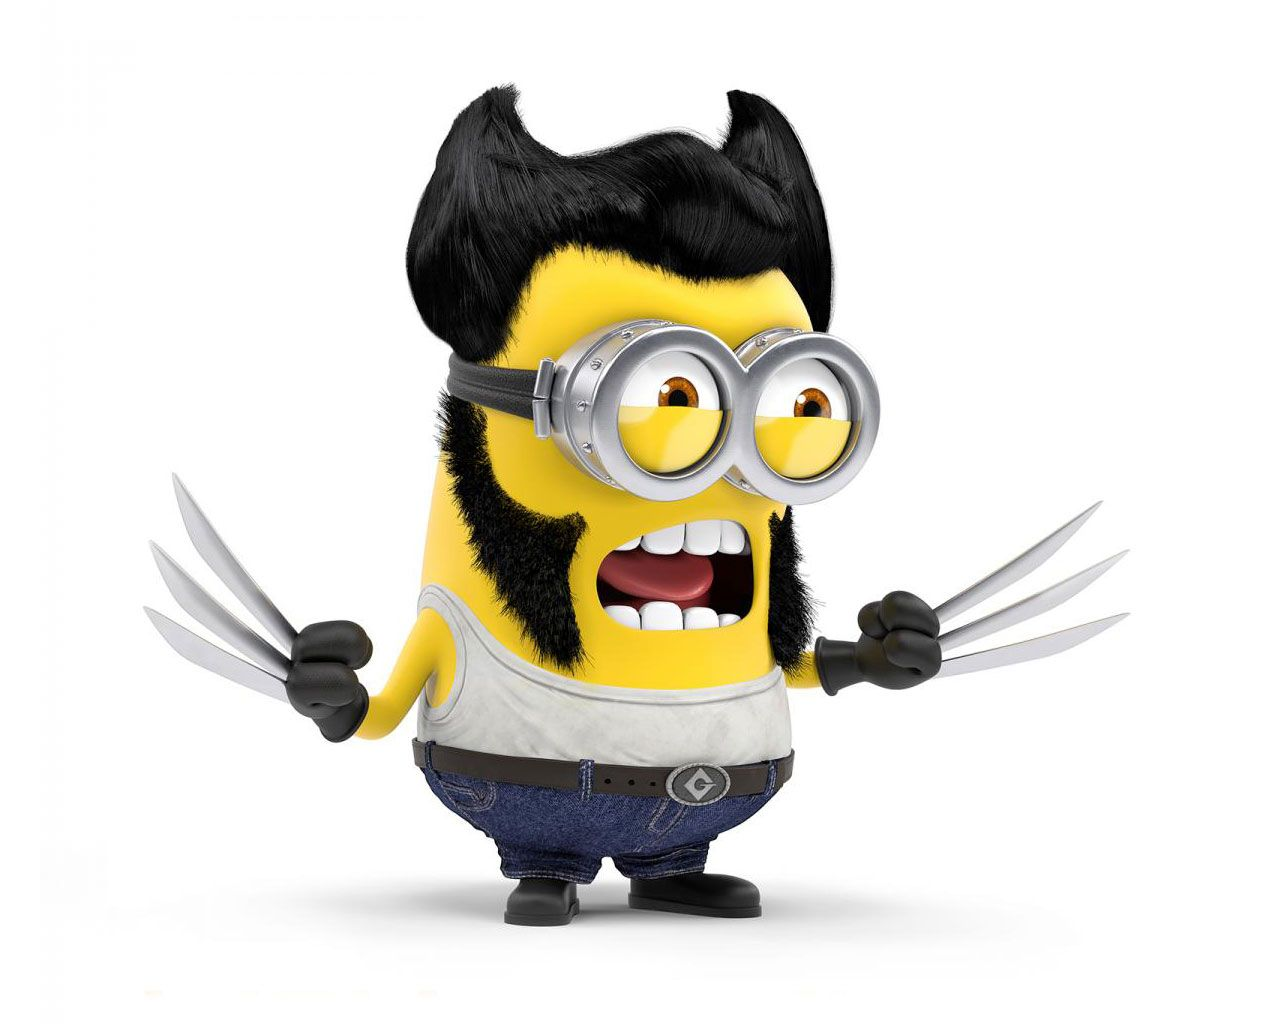 55 Cute Minion Wallpapers HD for Desktop (With images